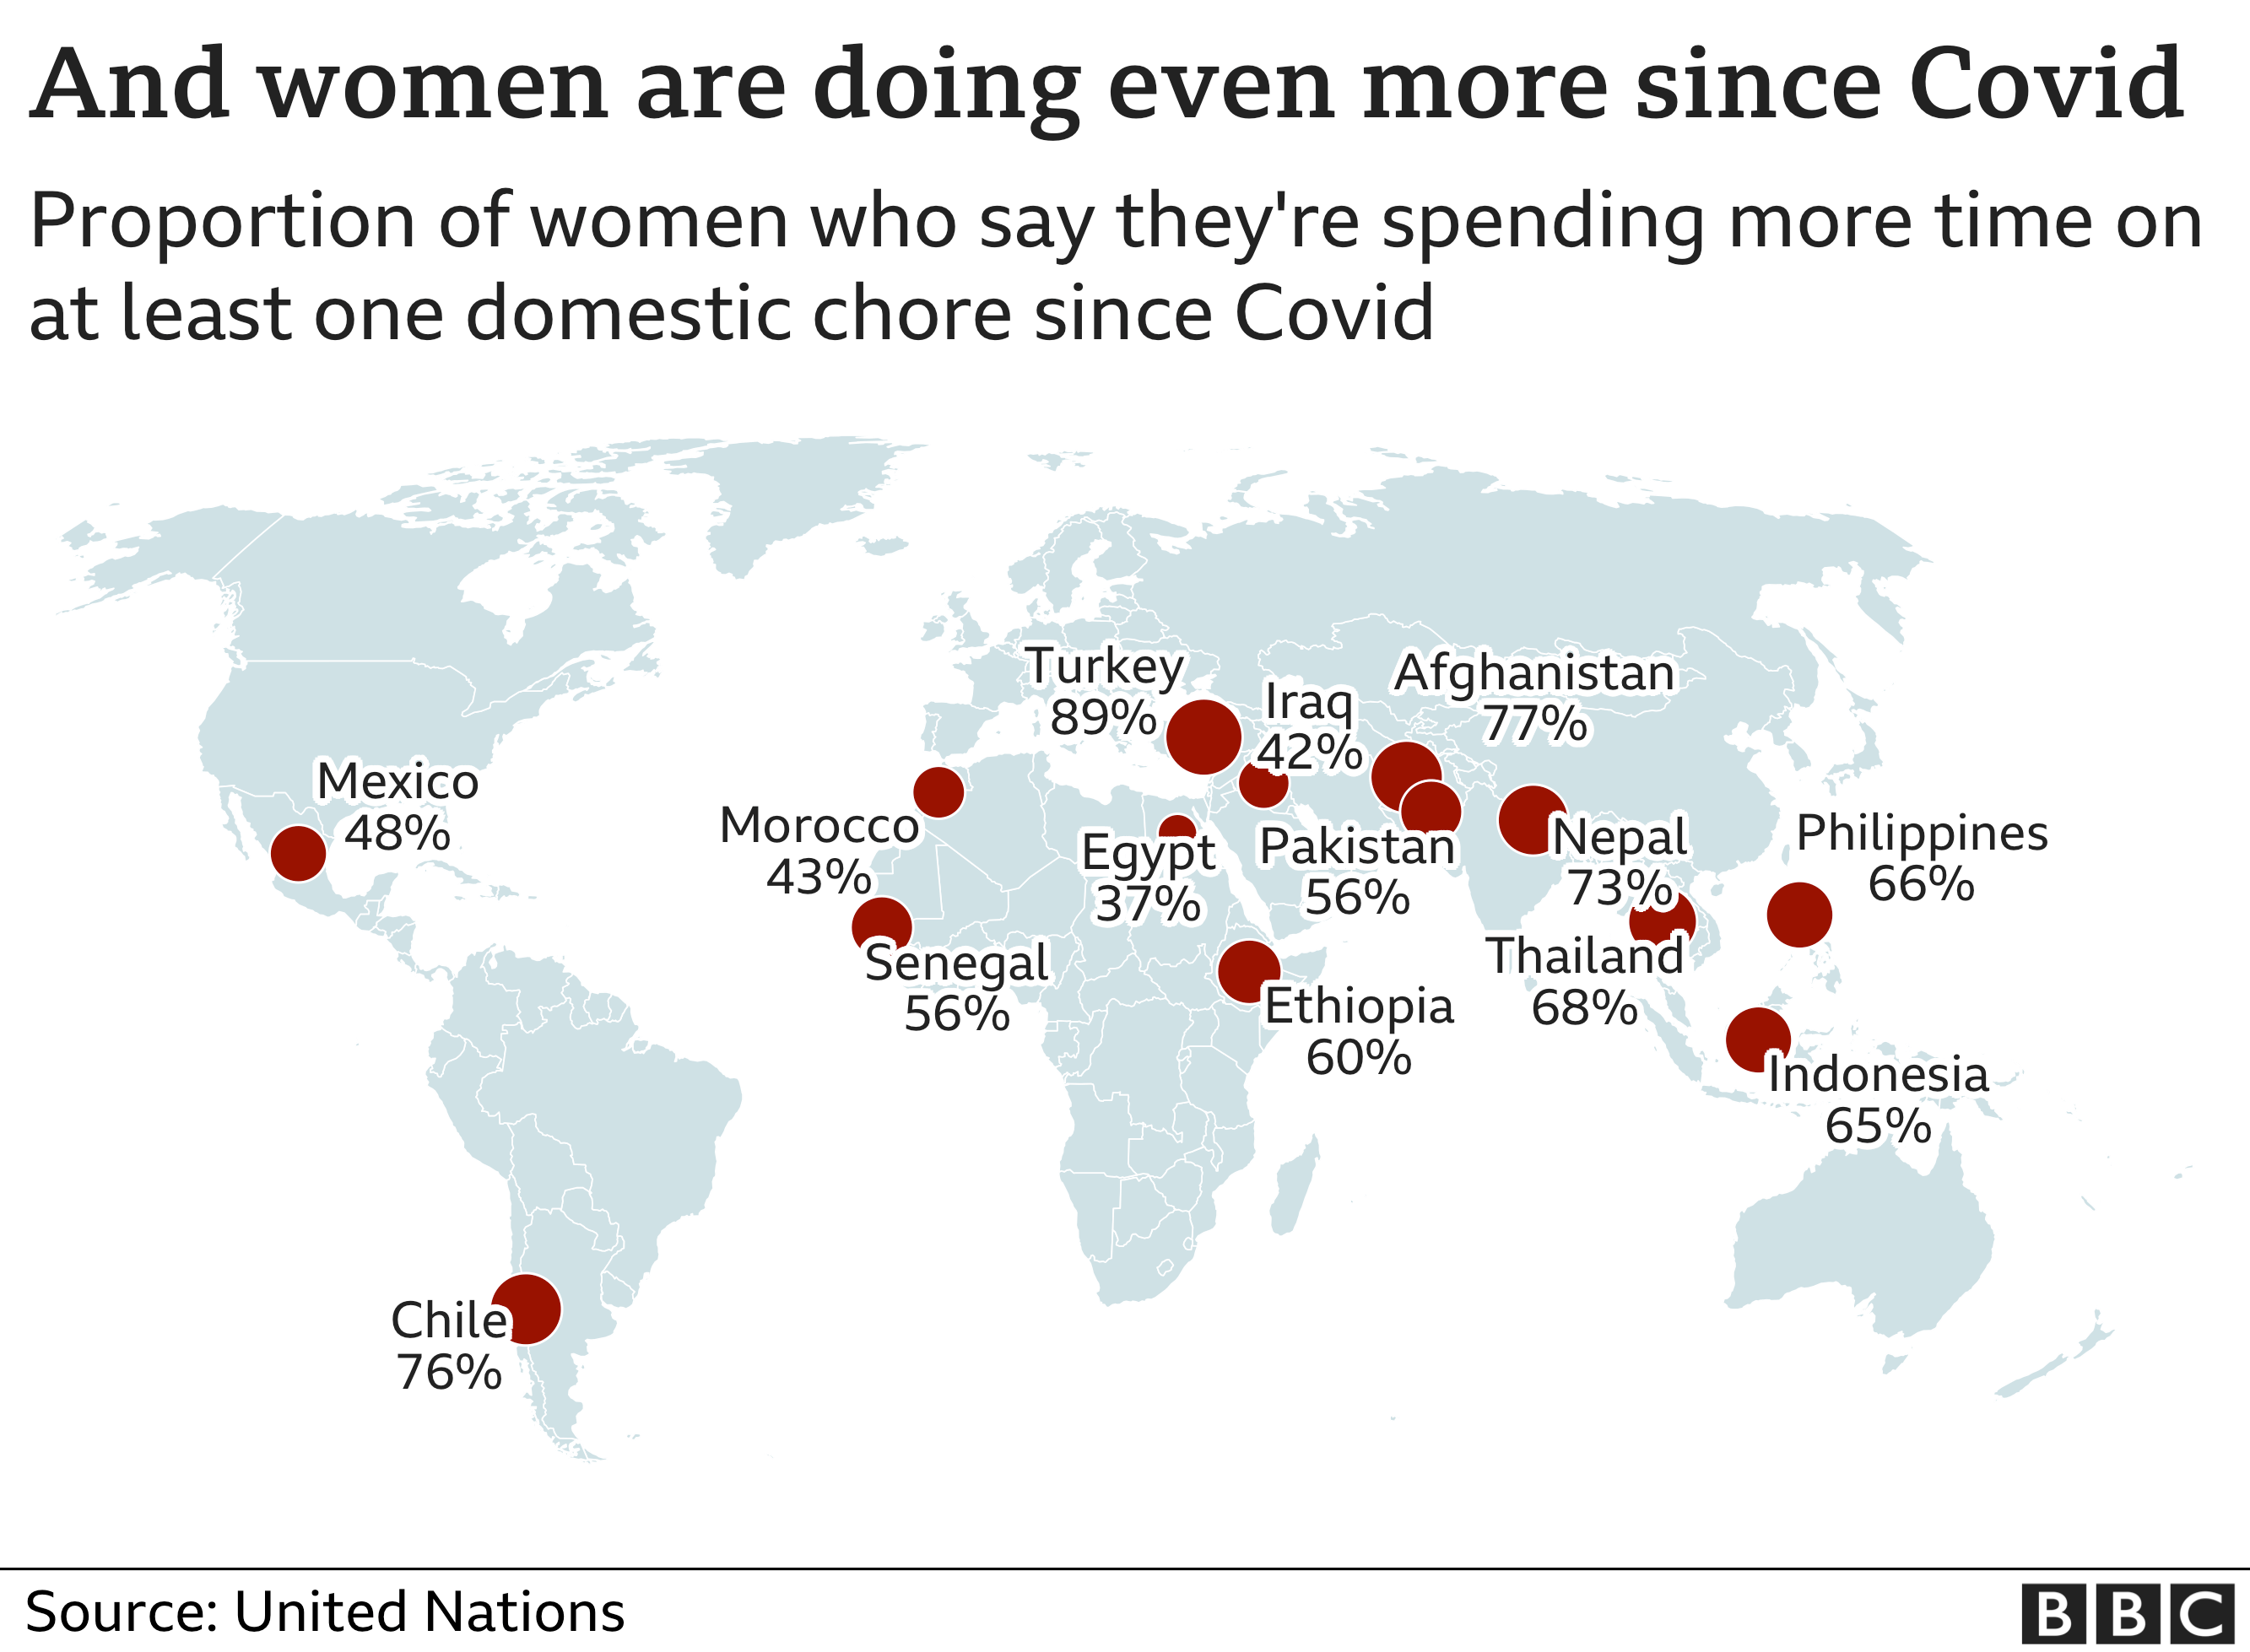 Map showing proportion of women who say they're doing more domestic chores since covid in selected countries